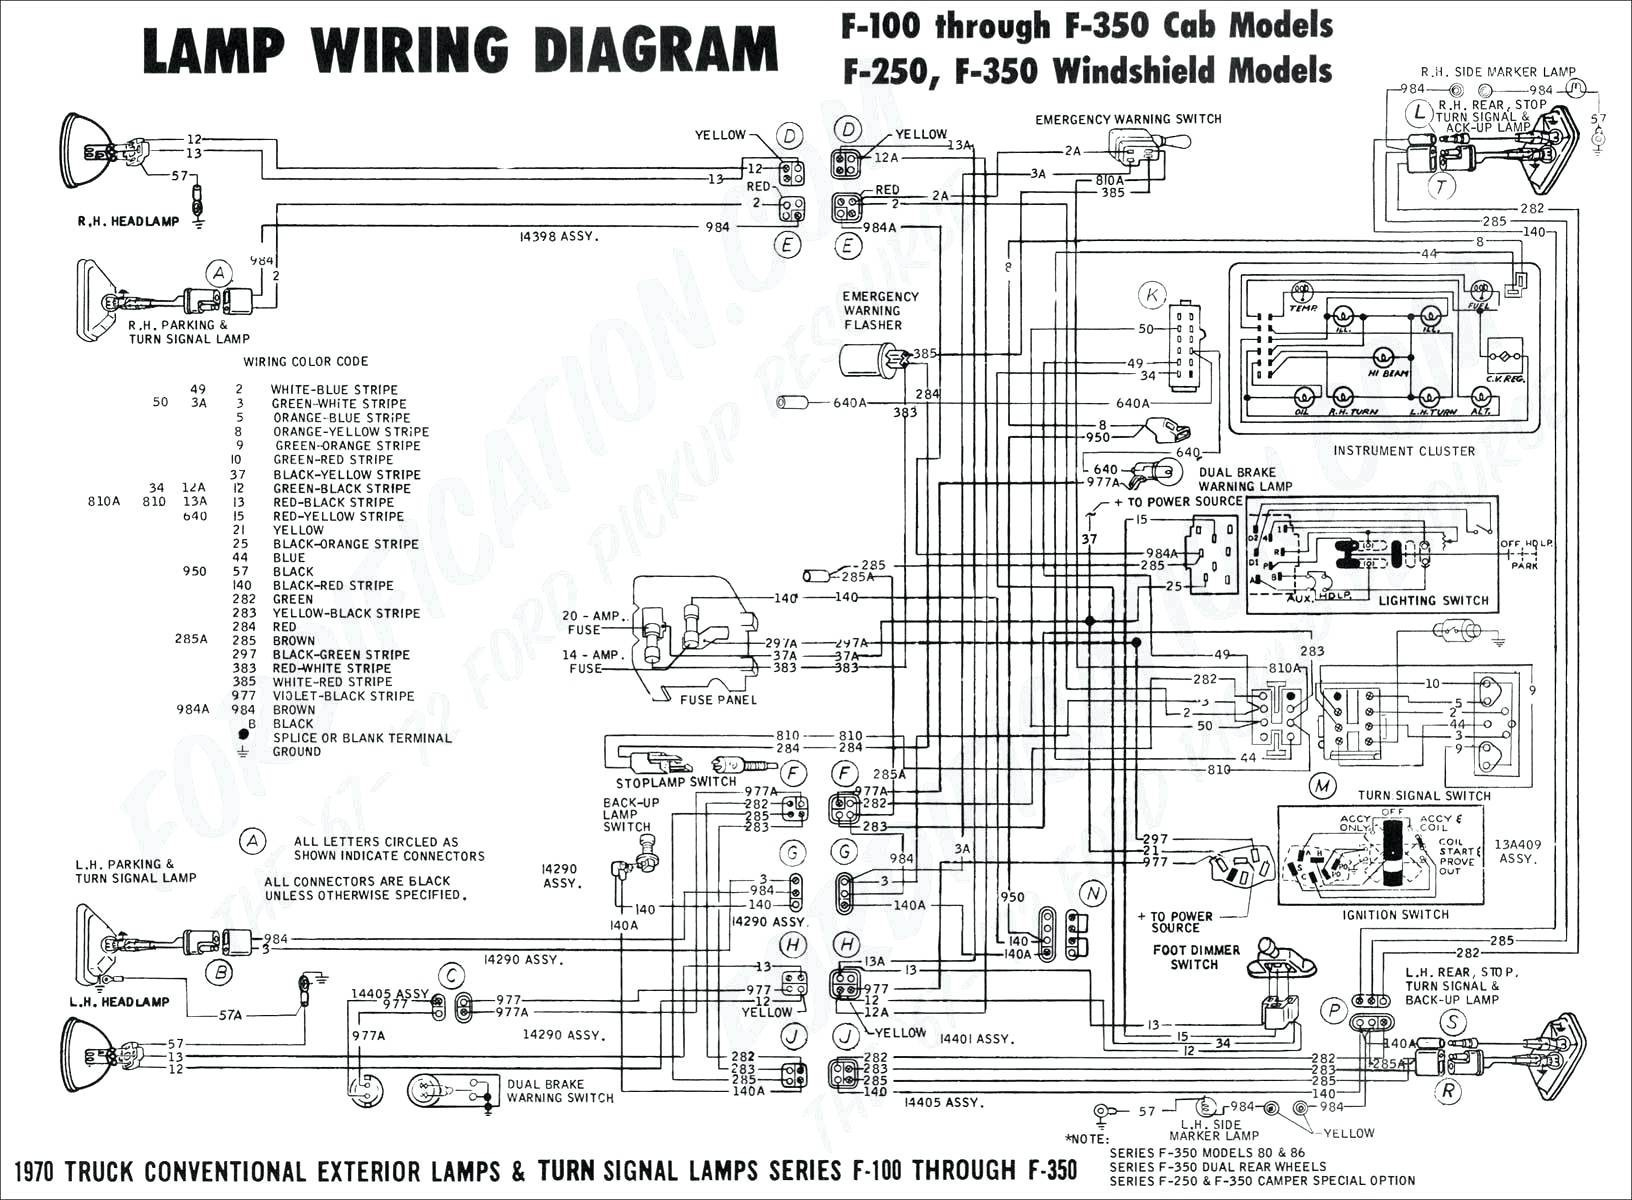 Yamaha F350 Command Link Wiring Diagram | Wiring Schematic ... on